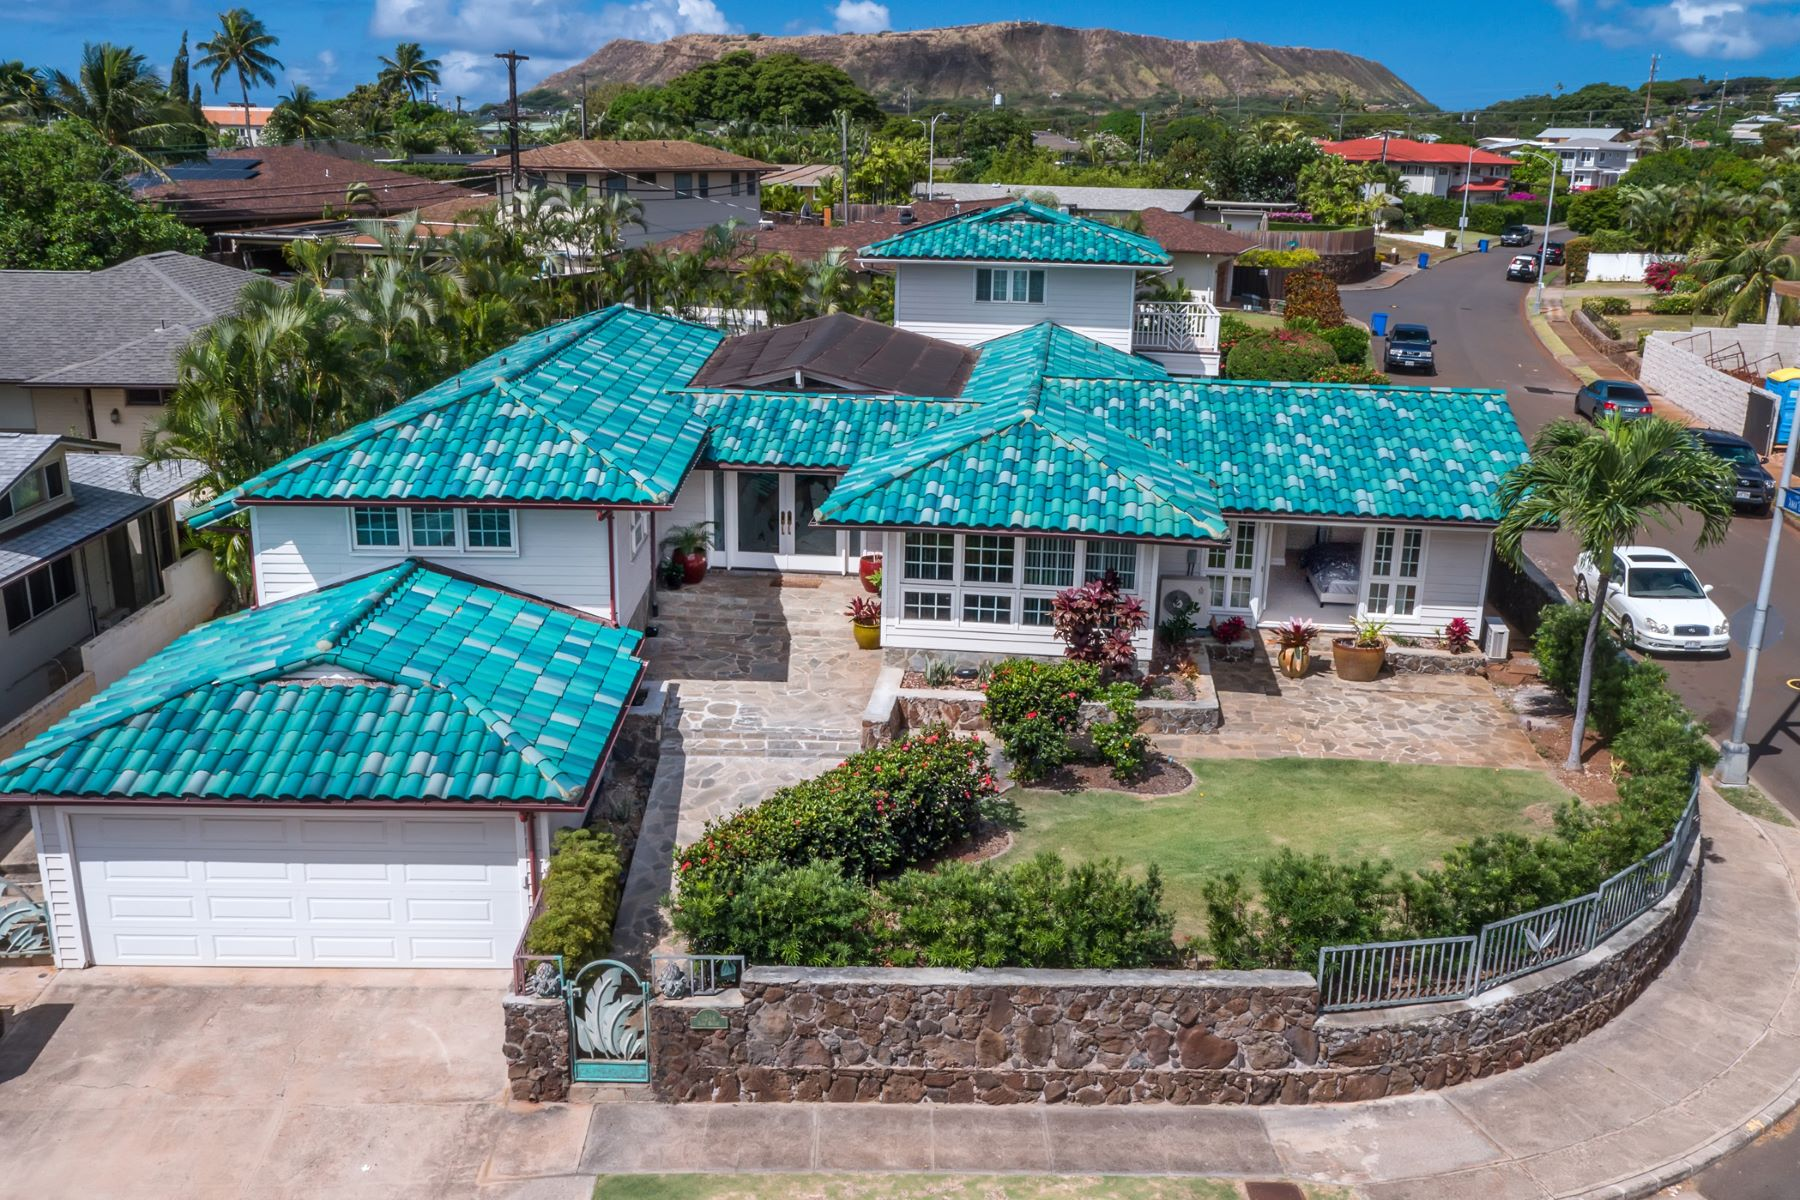 Single Family Home for Sale at Kahala Hideaway 1344 Pueo St Honolulu, Hawaii 96816 United StatesIn/Around: Kahala